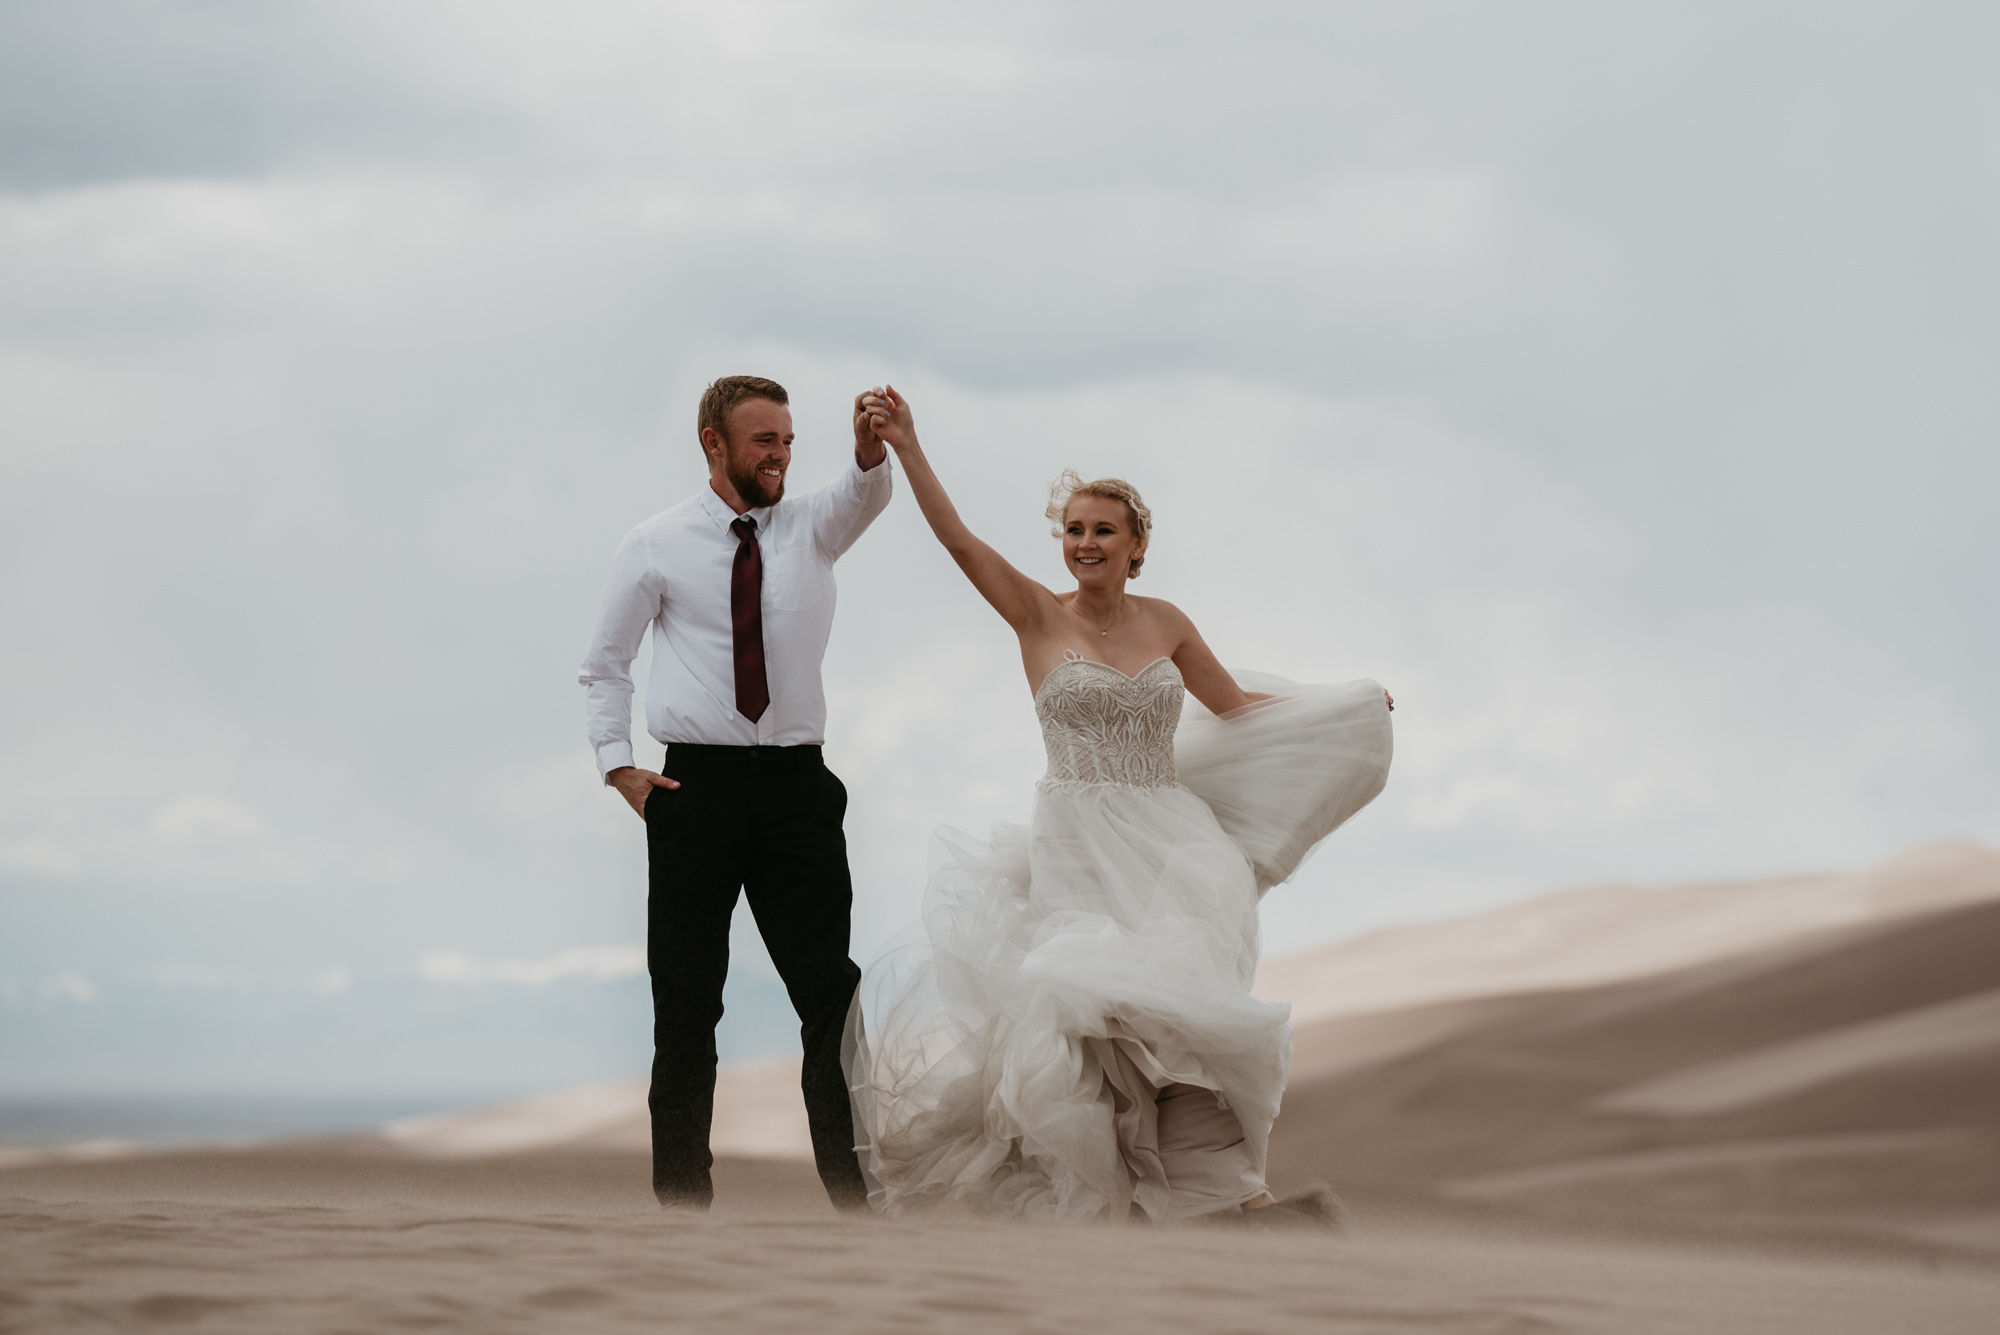 The bride and groom dance under overcast skies.